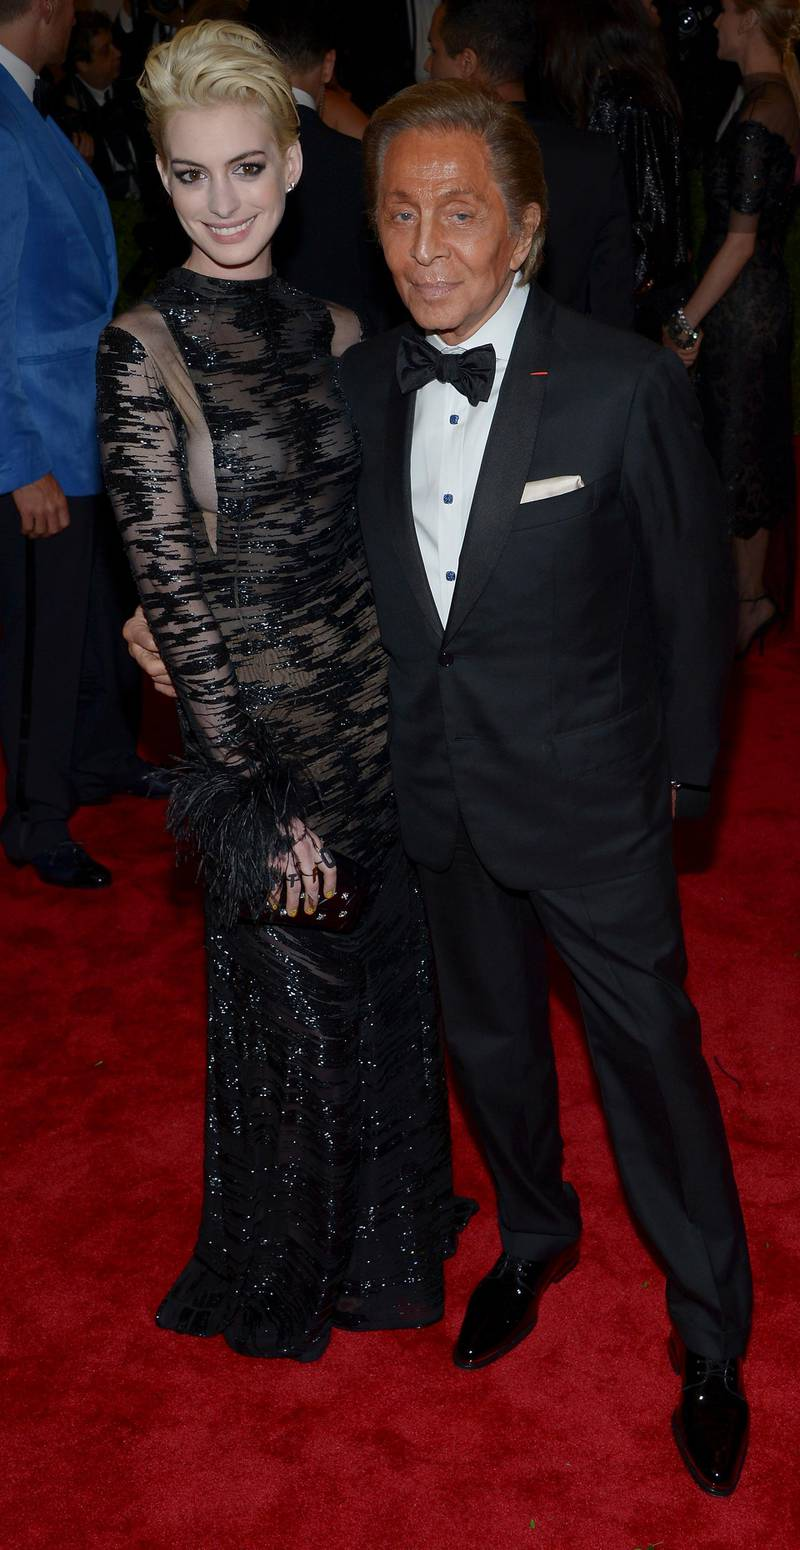 epa03690044 US actress Anne Hathaway and Italian Fashion Designer Valentino attend the Costume Institute Gala Benefit celebrating, 'Punk: Chaos to Couture,' an exhibition at the Metropolitan Museum of Art in New York, New York, USA, 06 May 2013.  EPA/JUSTIN LANE